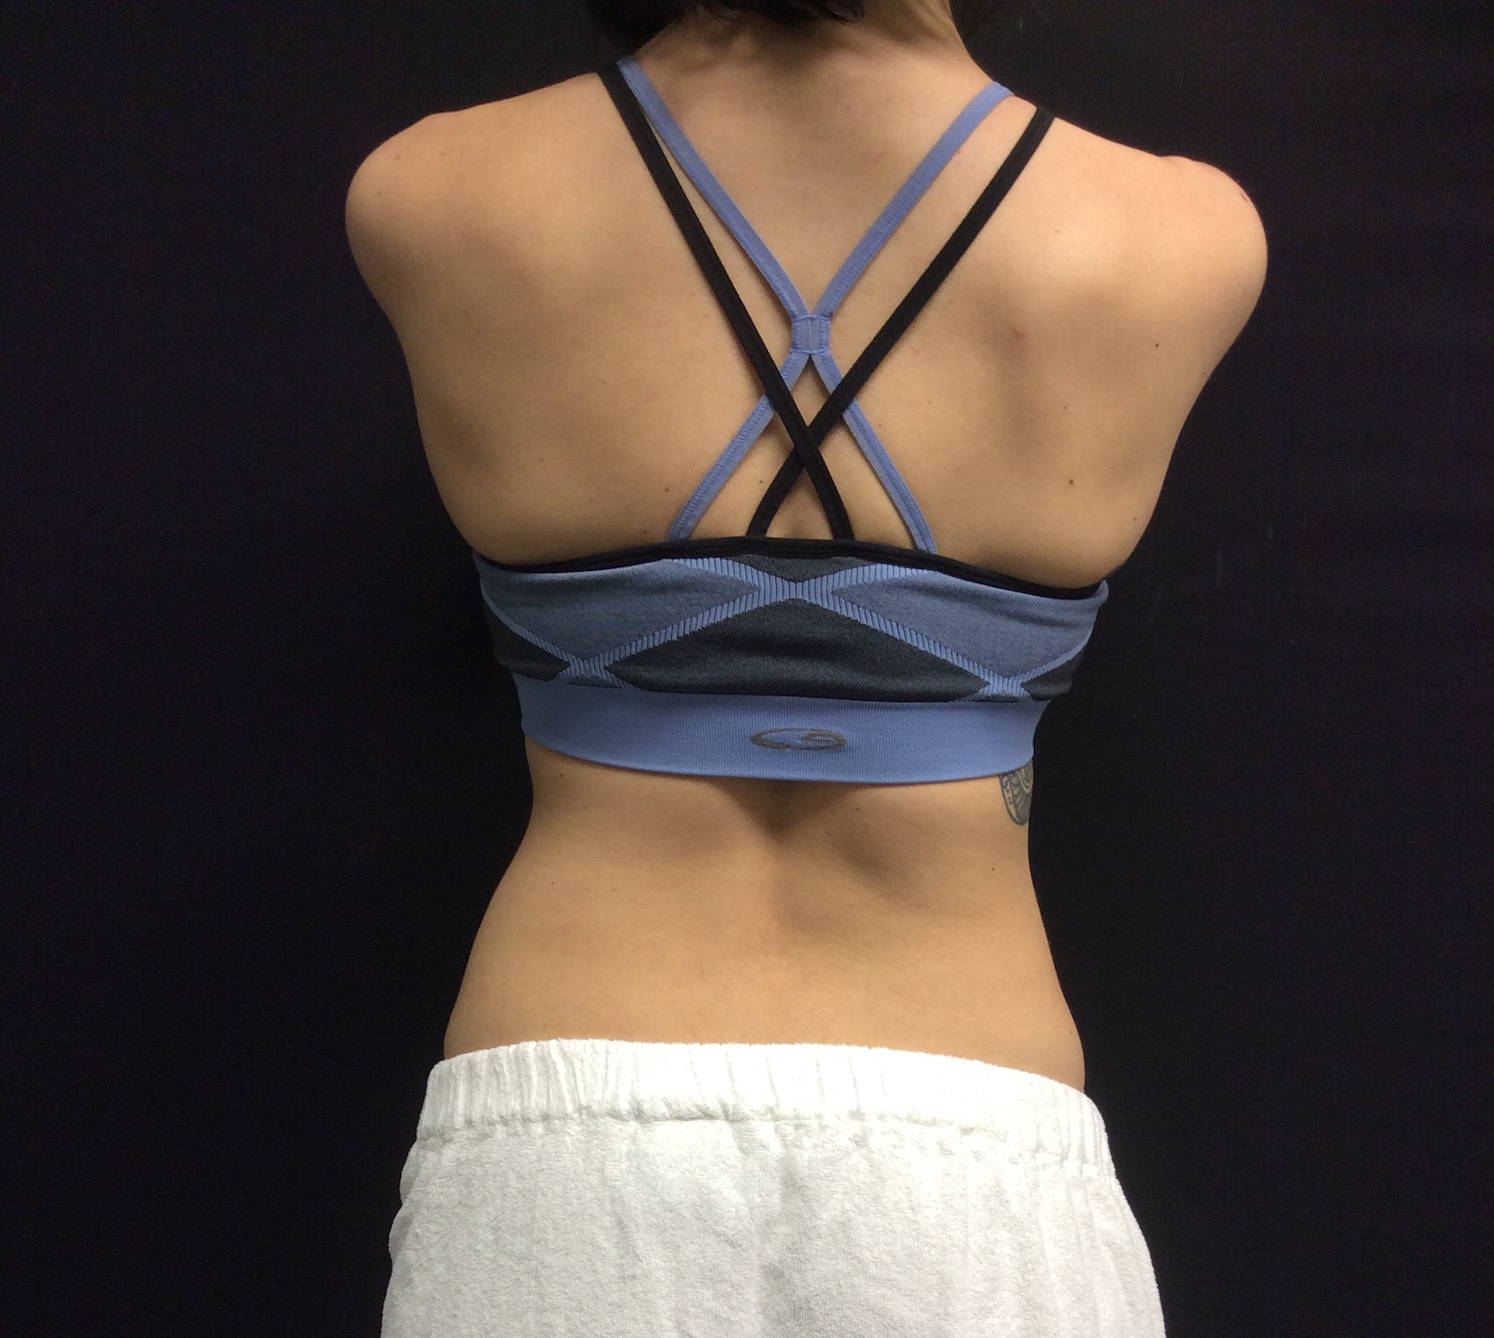 Pure Luxe Patient after CoolSculpting Treatment (waist) - individual results may vary